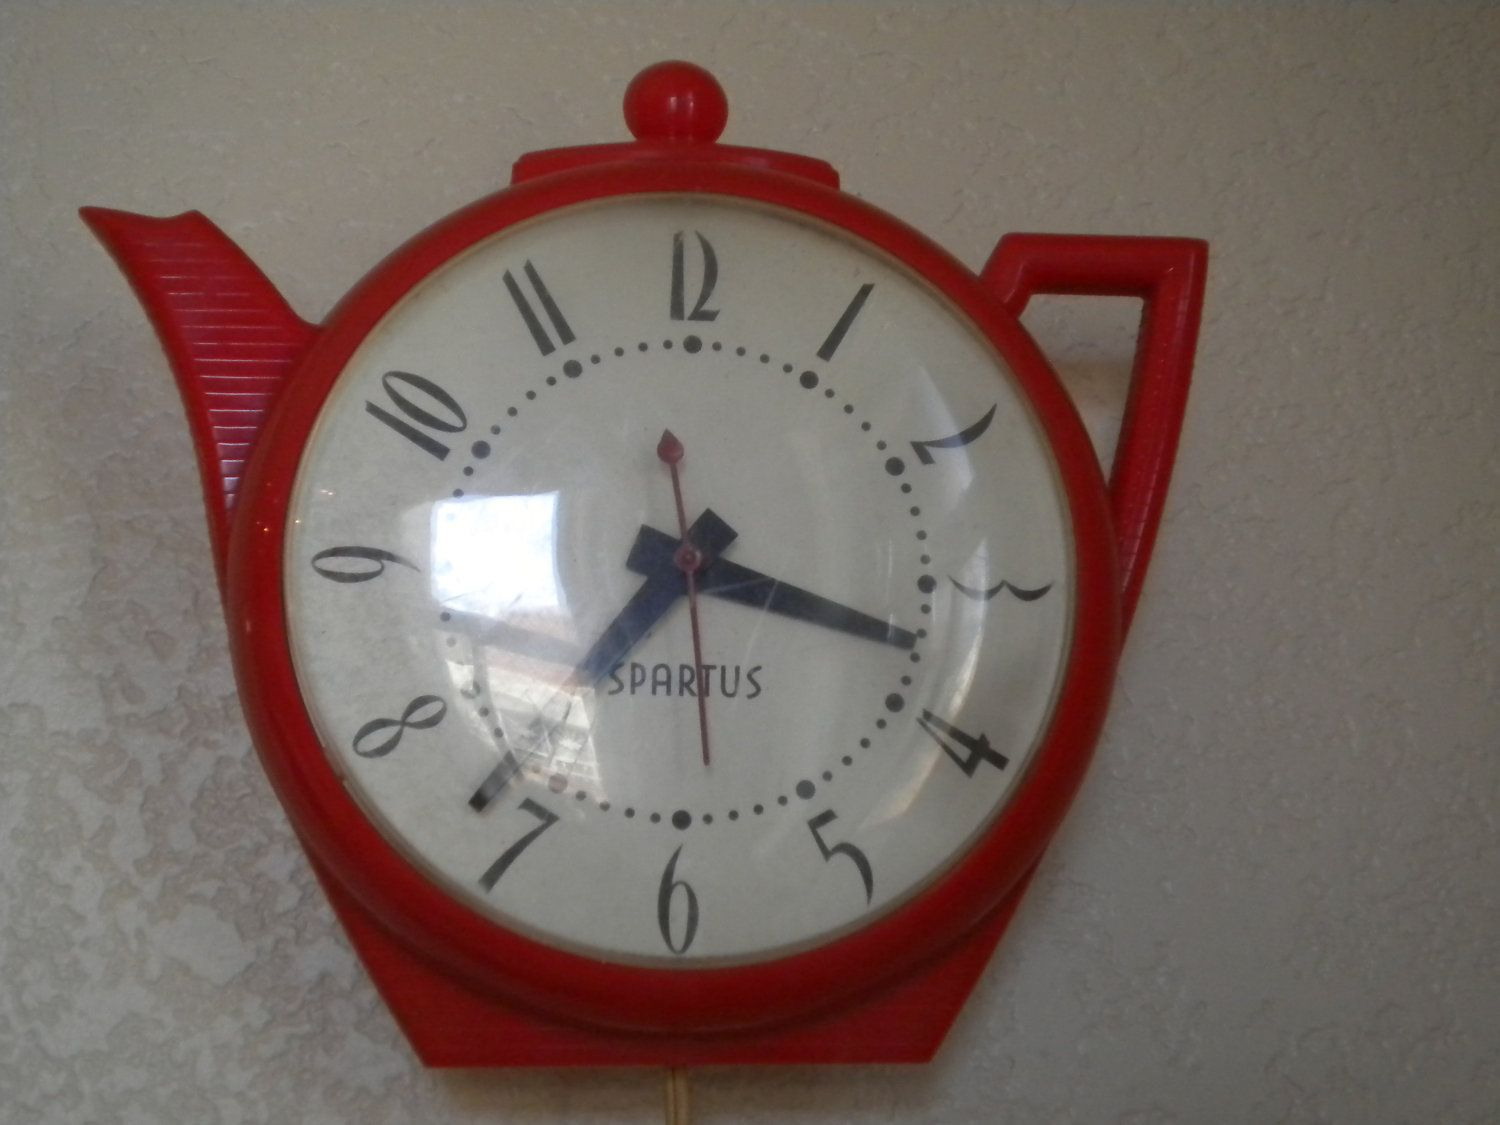 Vintage 50s Red Tea Pot Kitchen Clock Spartus.